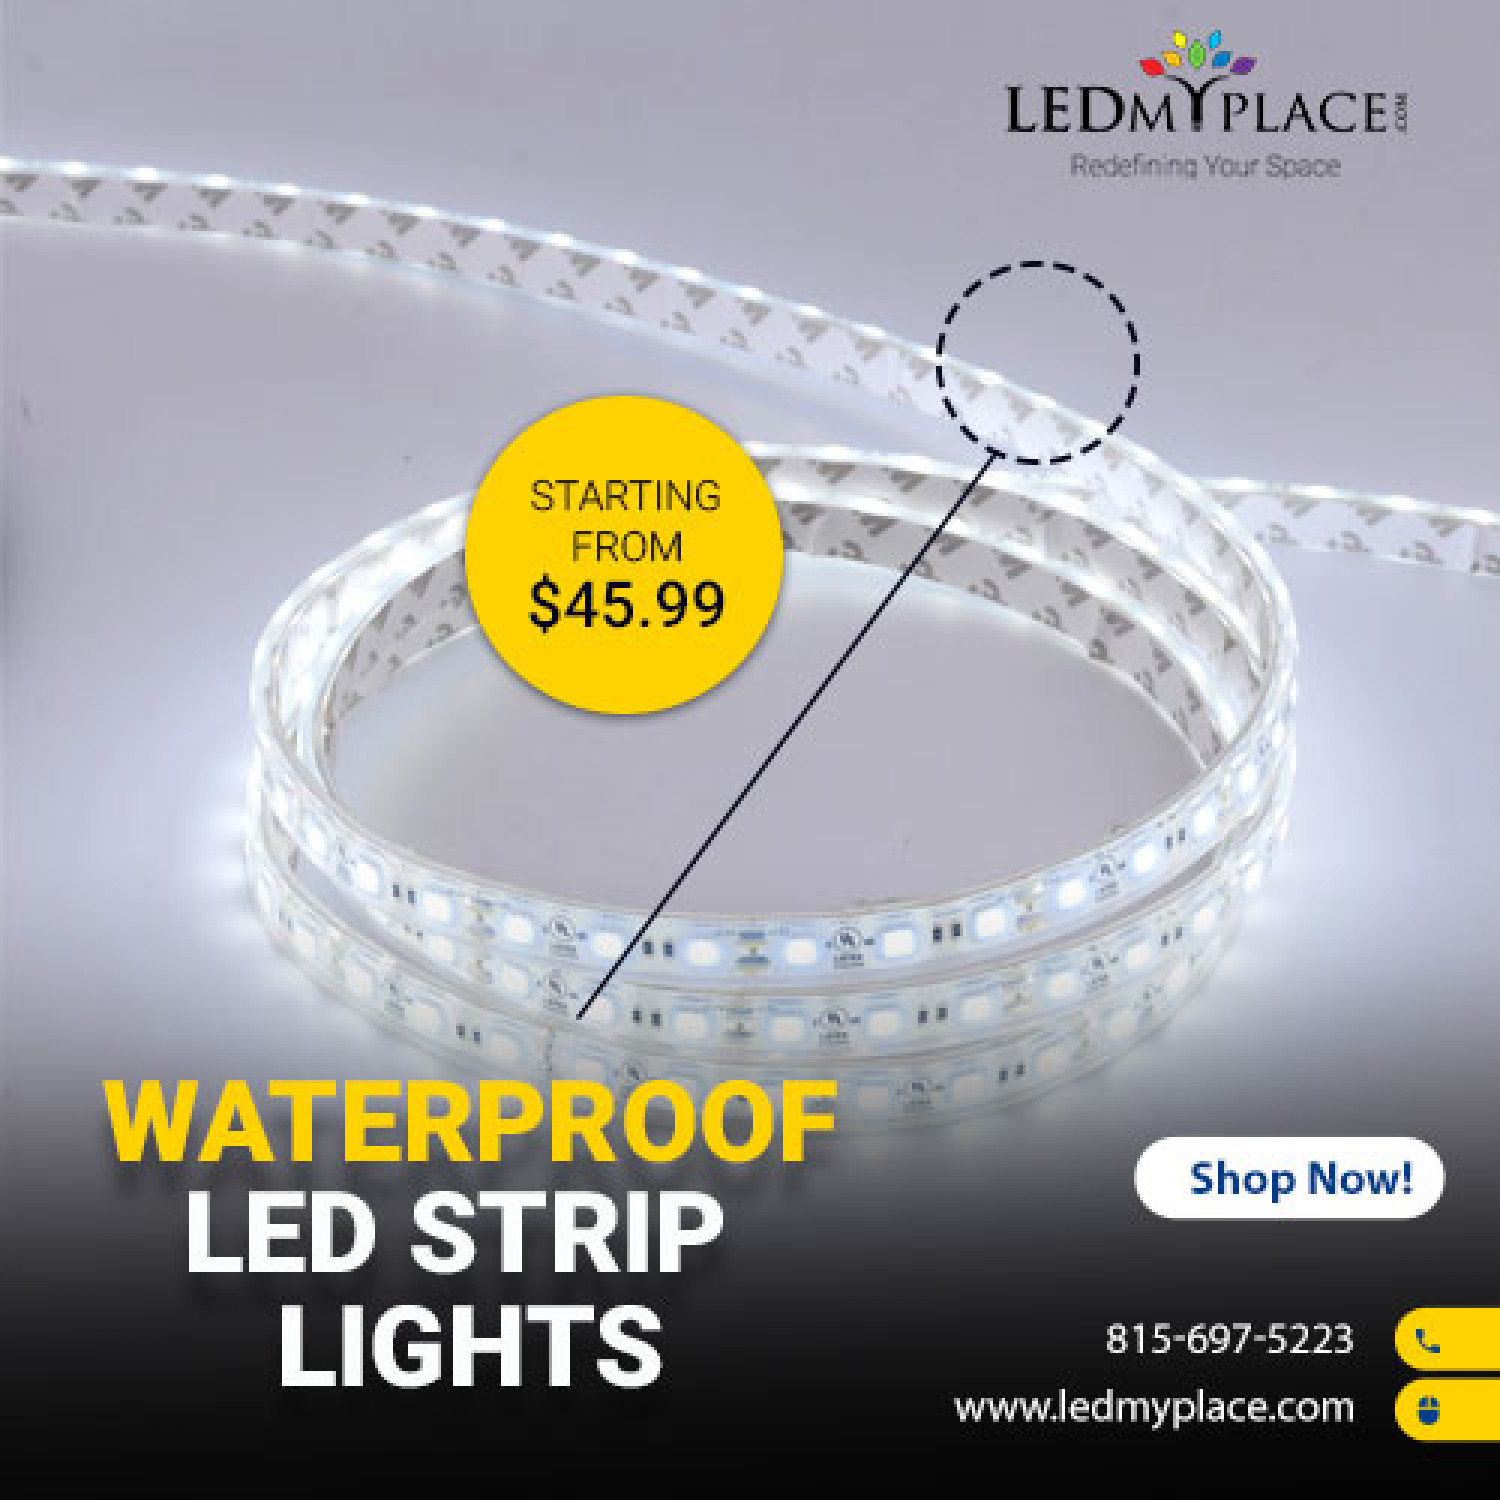 LED Strip Lights - An Energy-efficient And Low Maintenance Lights Infographic